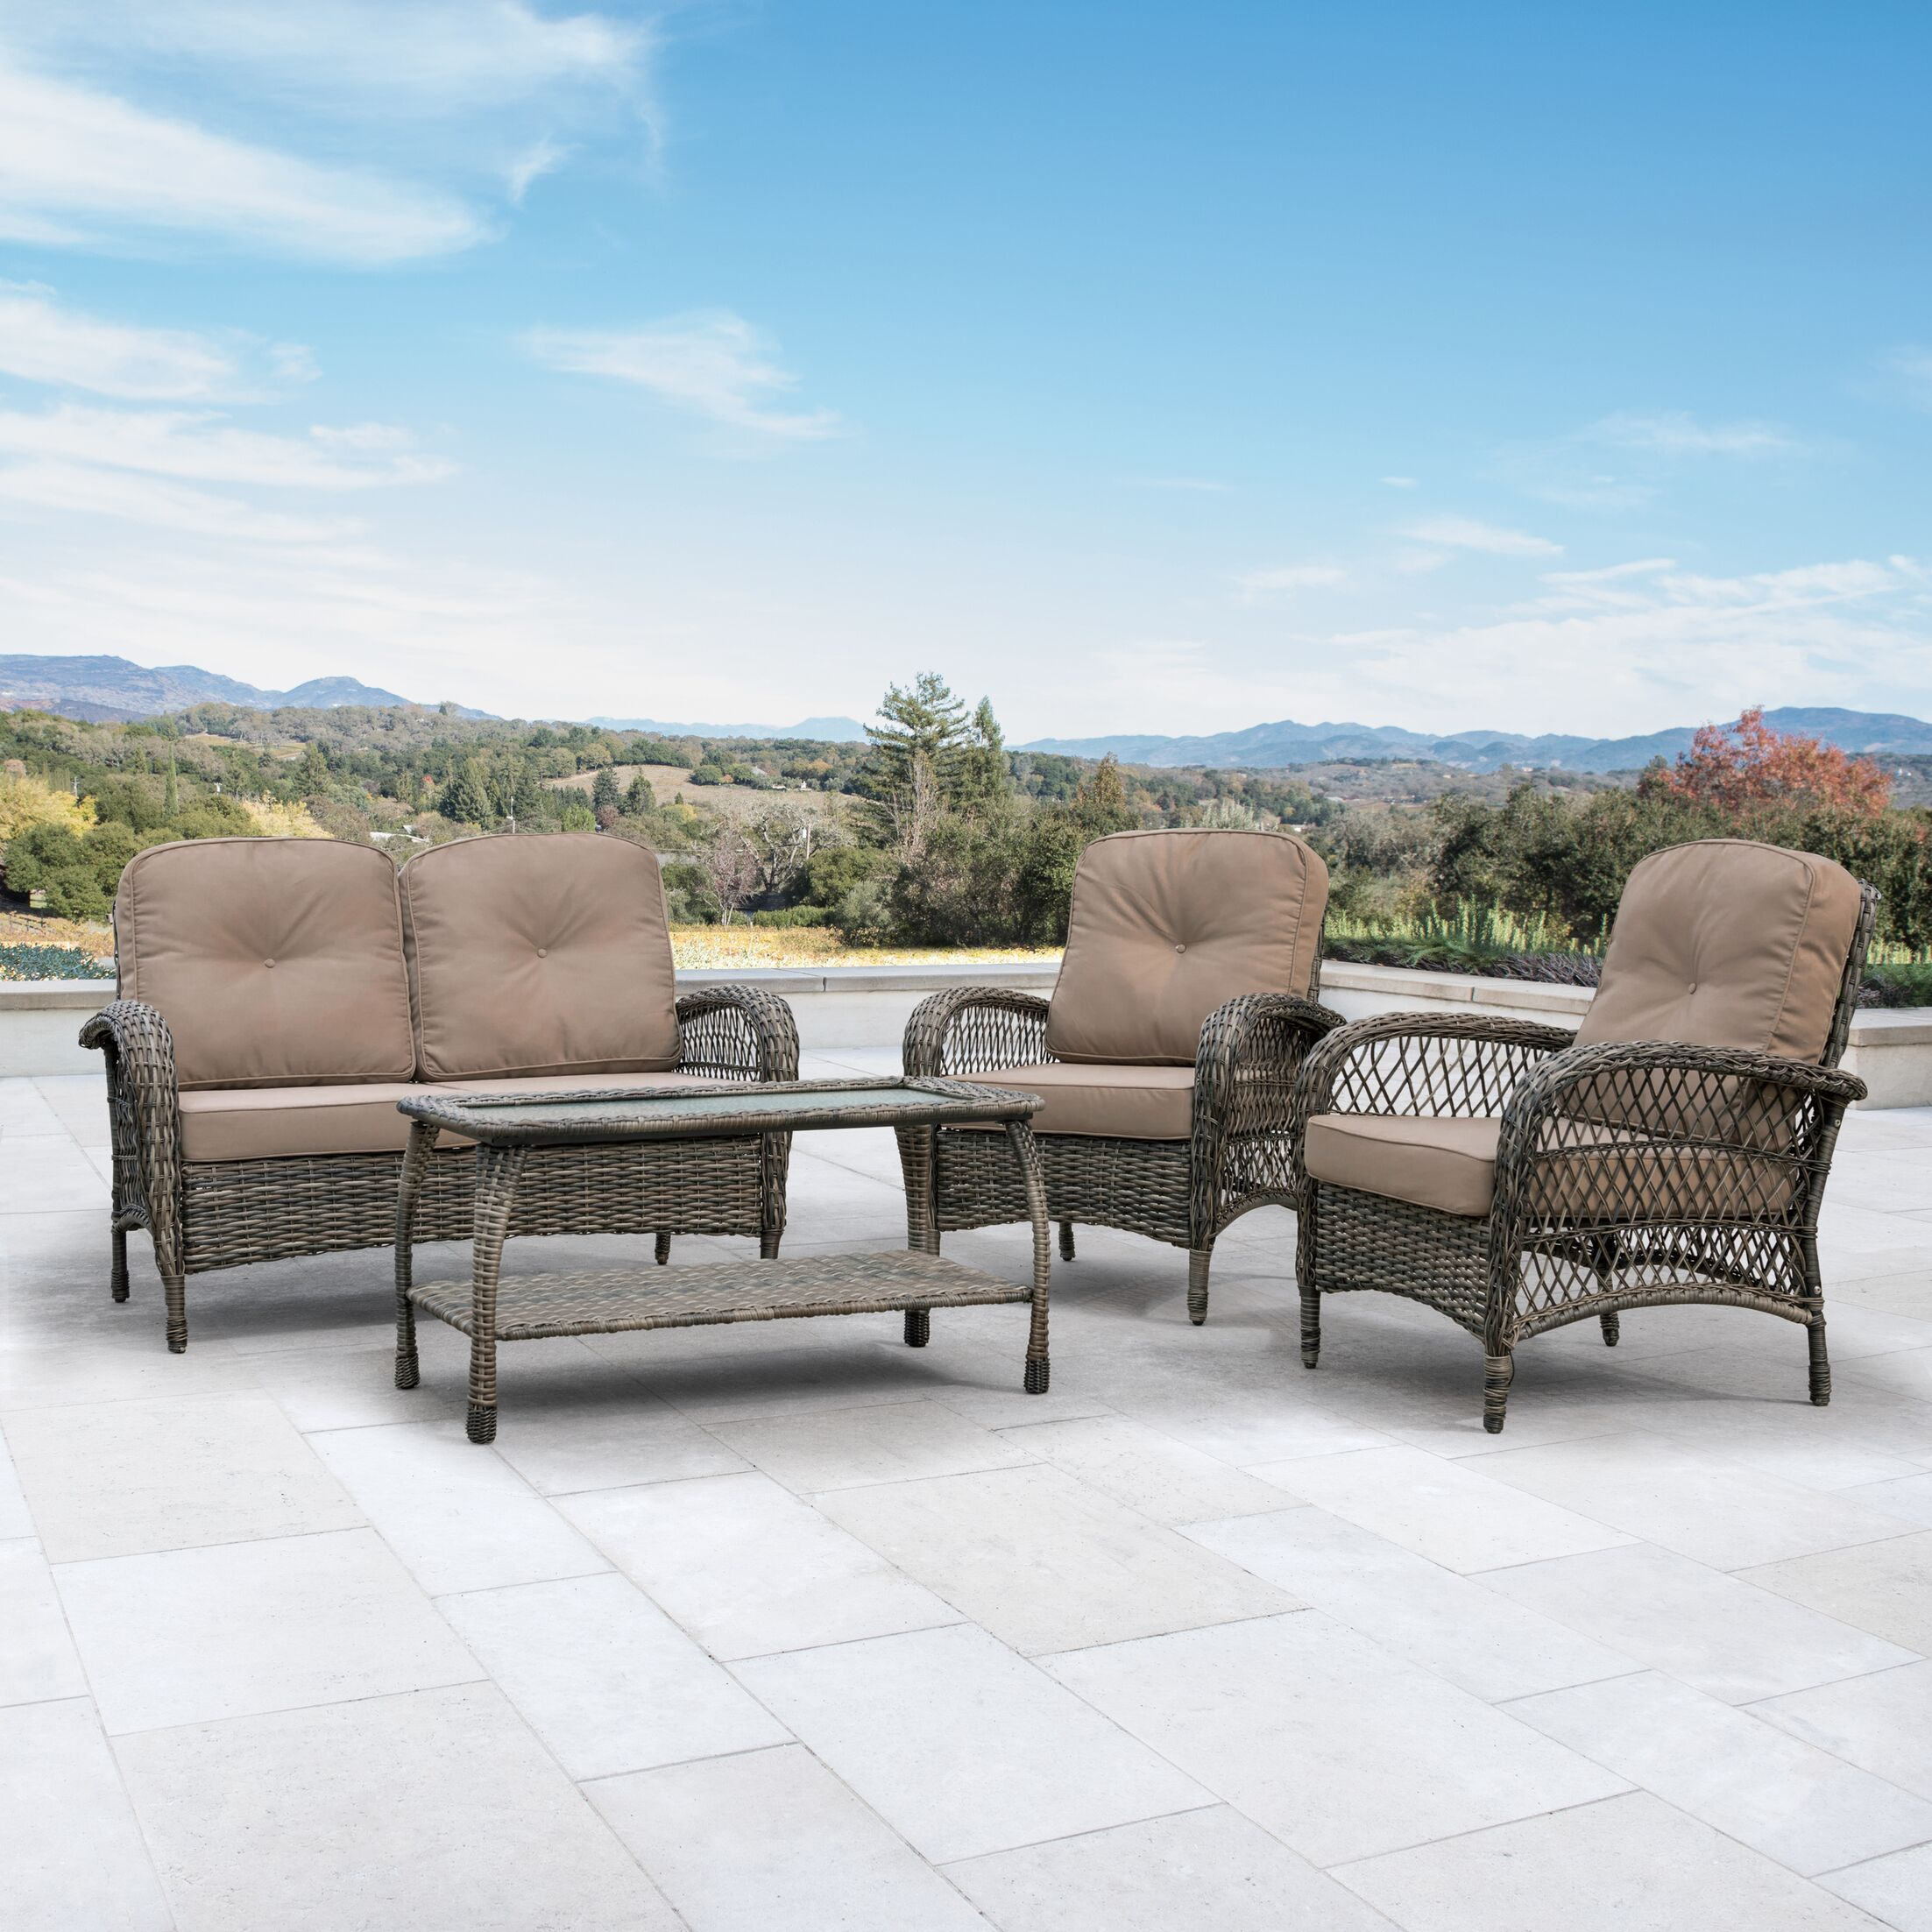 Juniper 4 Piece Rattan Sectional Seating Group with Cushions Cushion Color: Brown